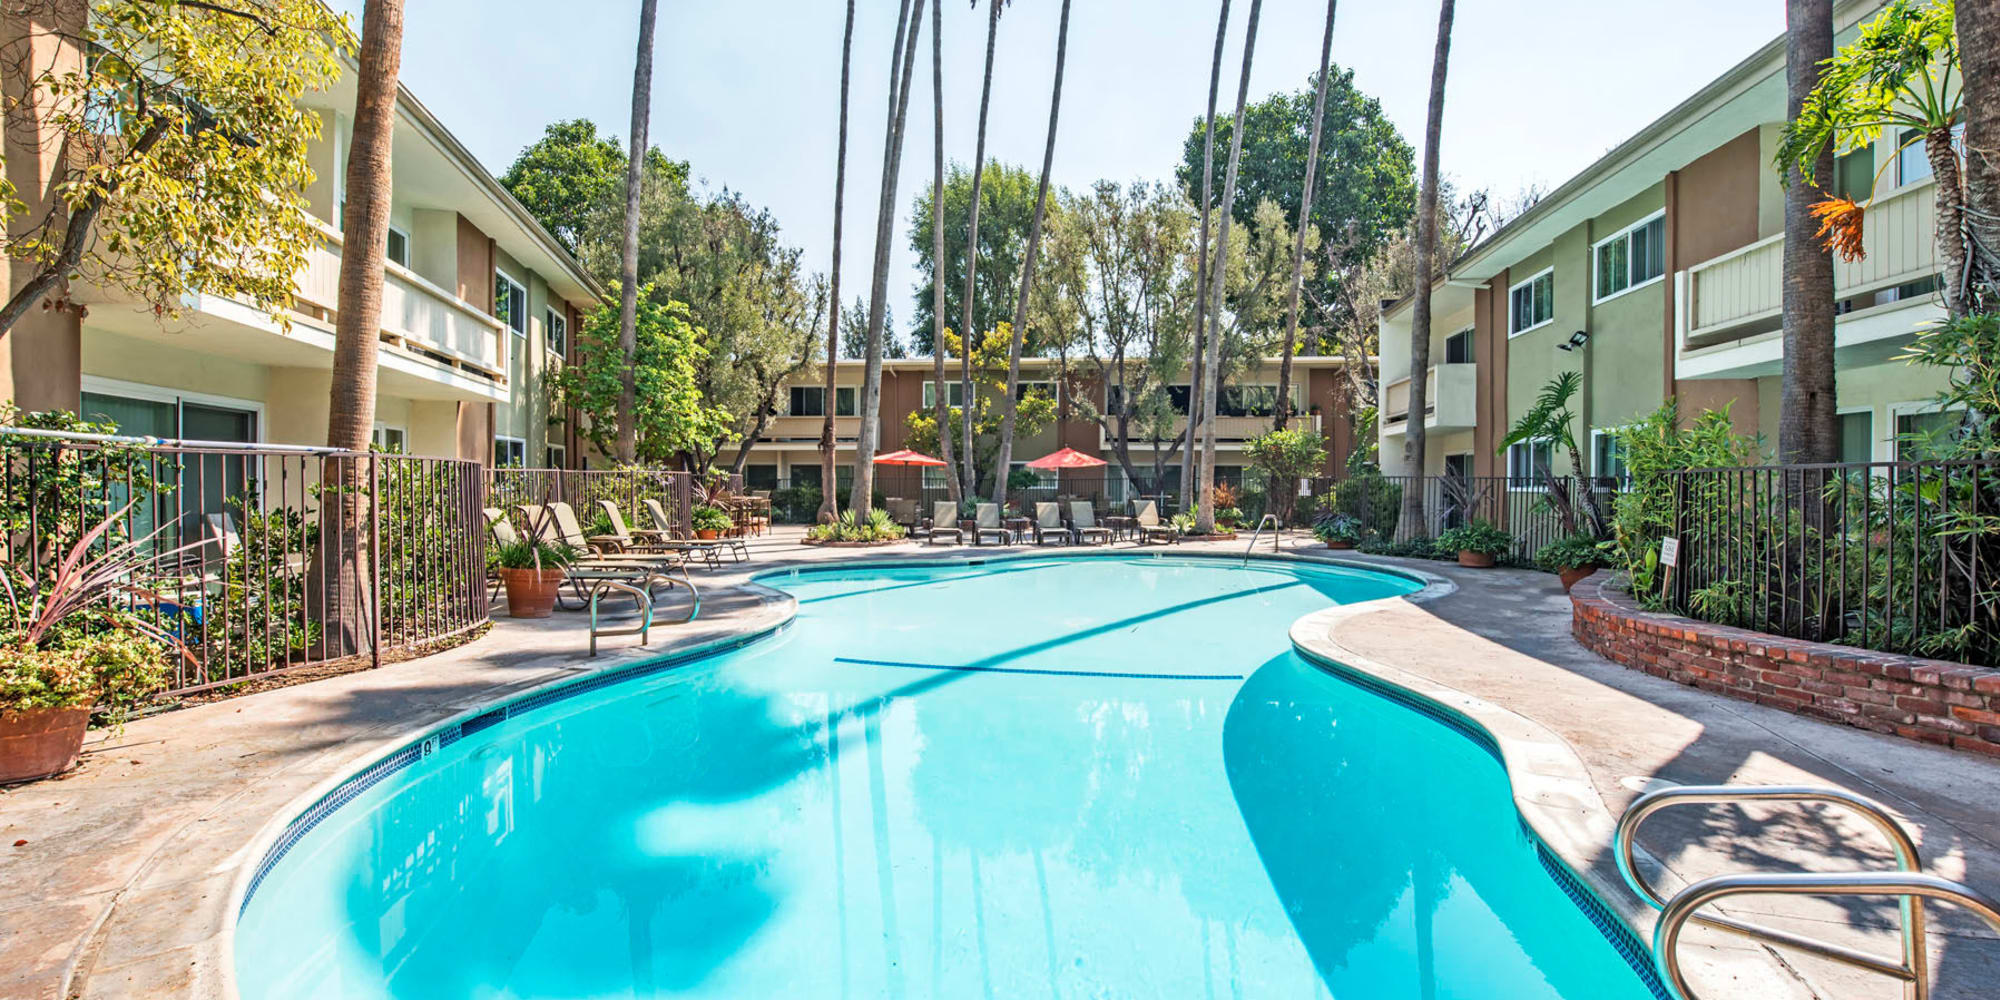 Resort-style swimming pool surrounded by palm trees at Villa Vicente in Los Angeles, California